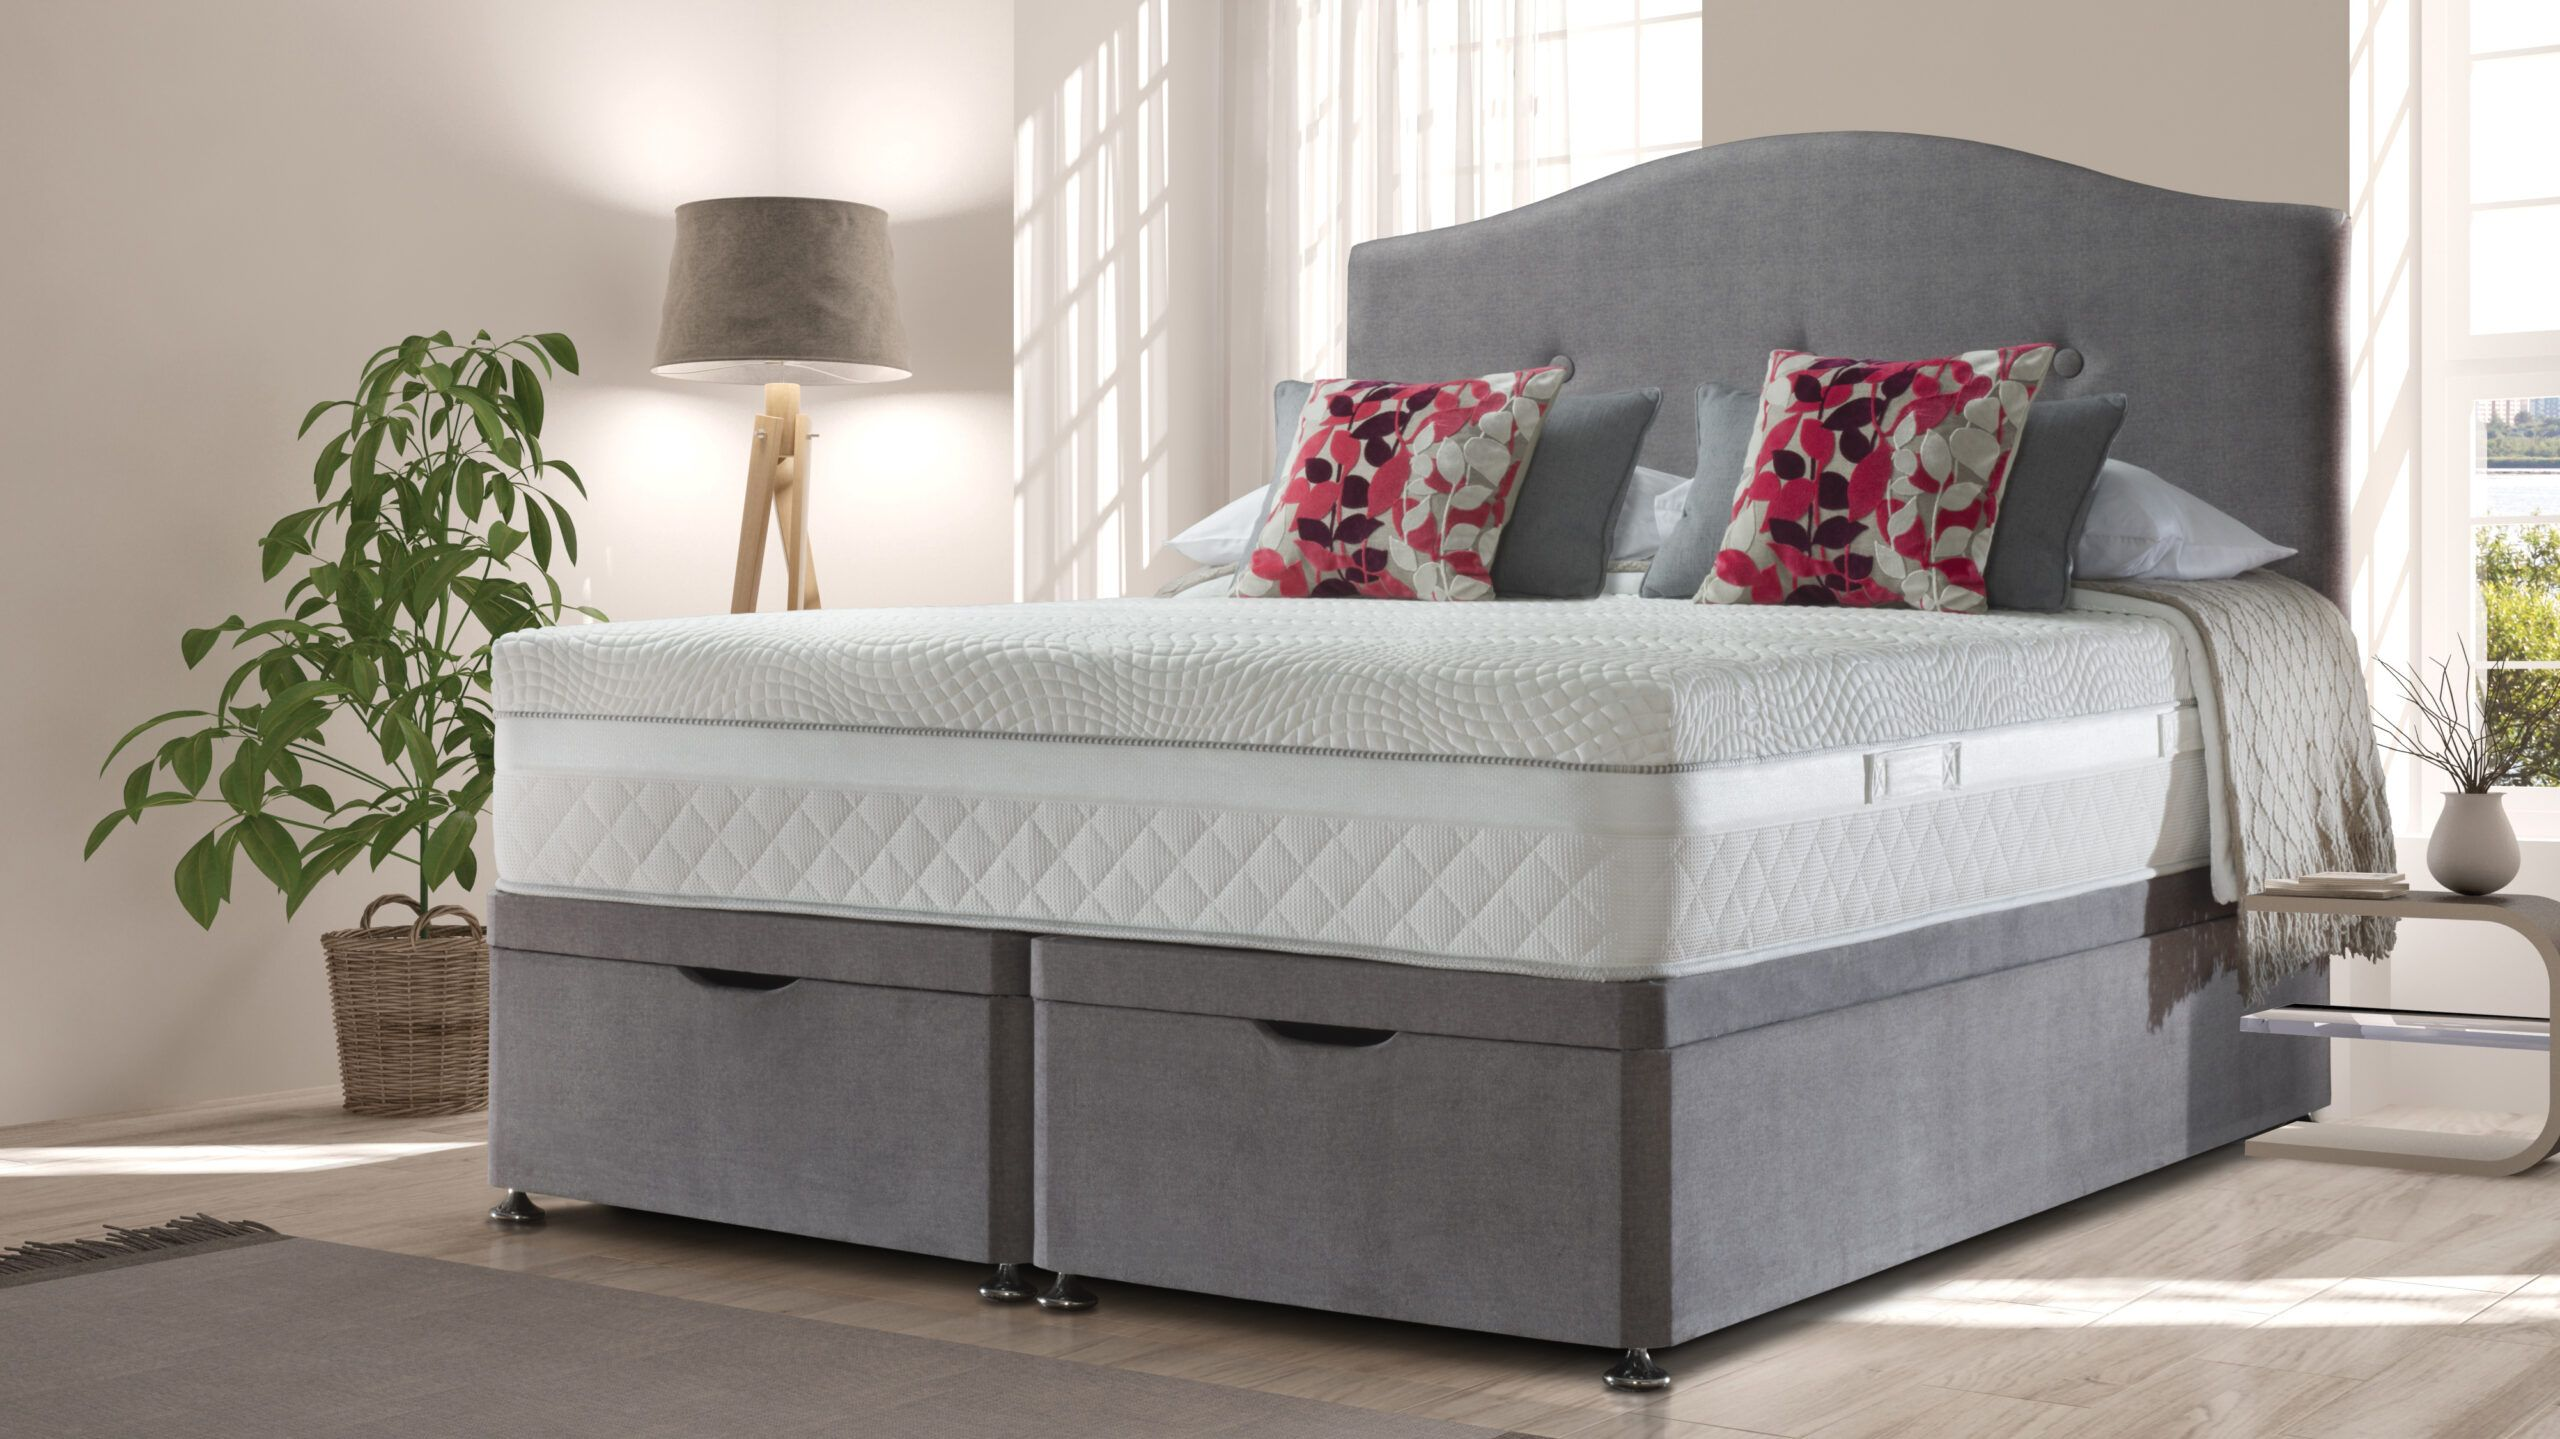 Best Sealy Mattress for Side Sleepers Reviews 2020 in 2020